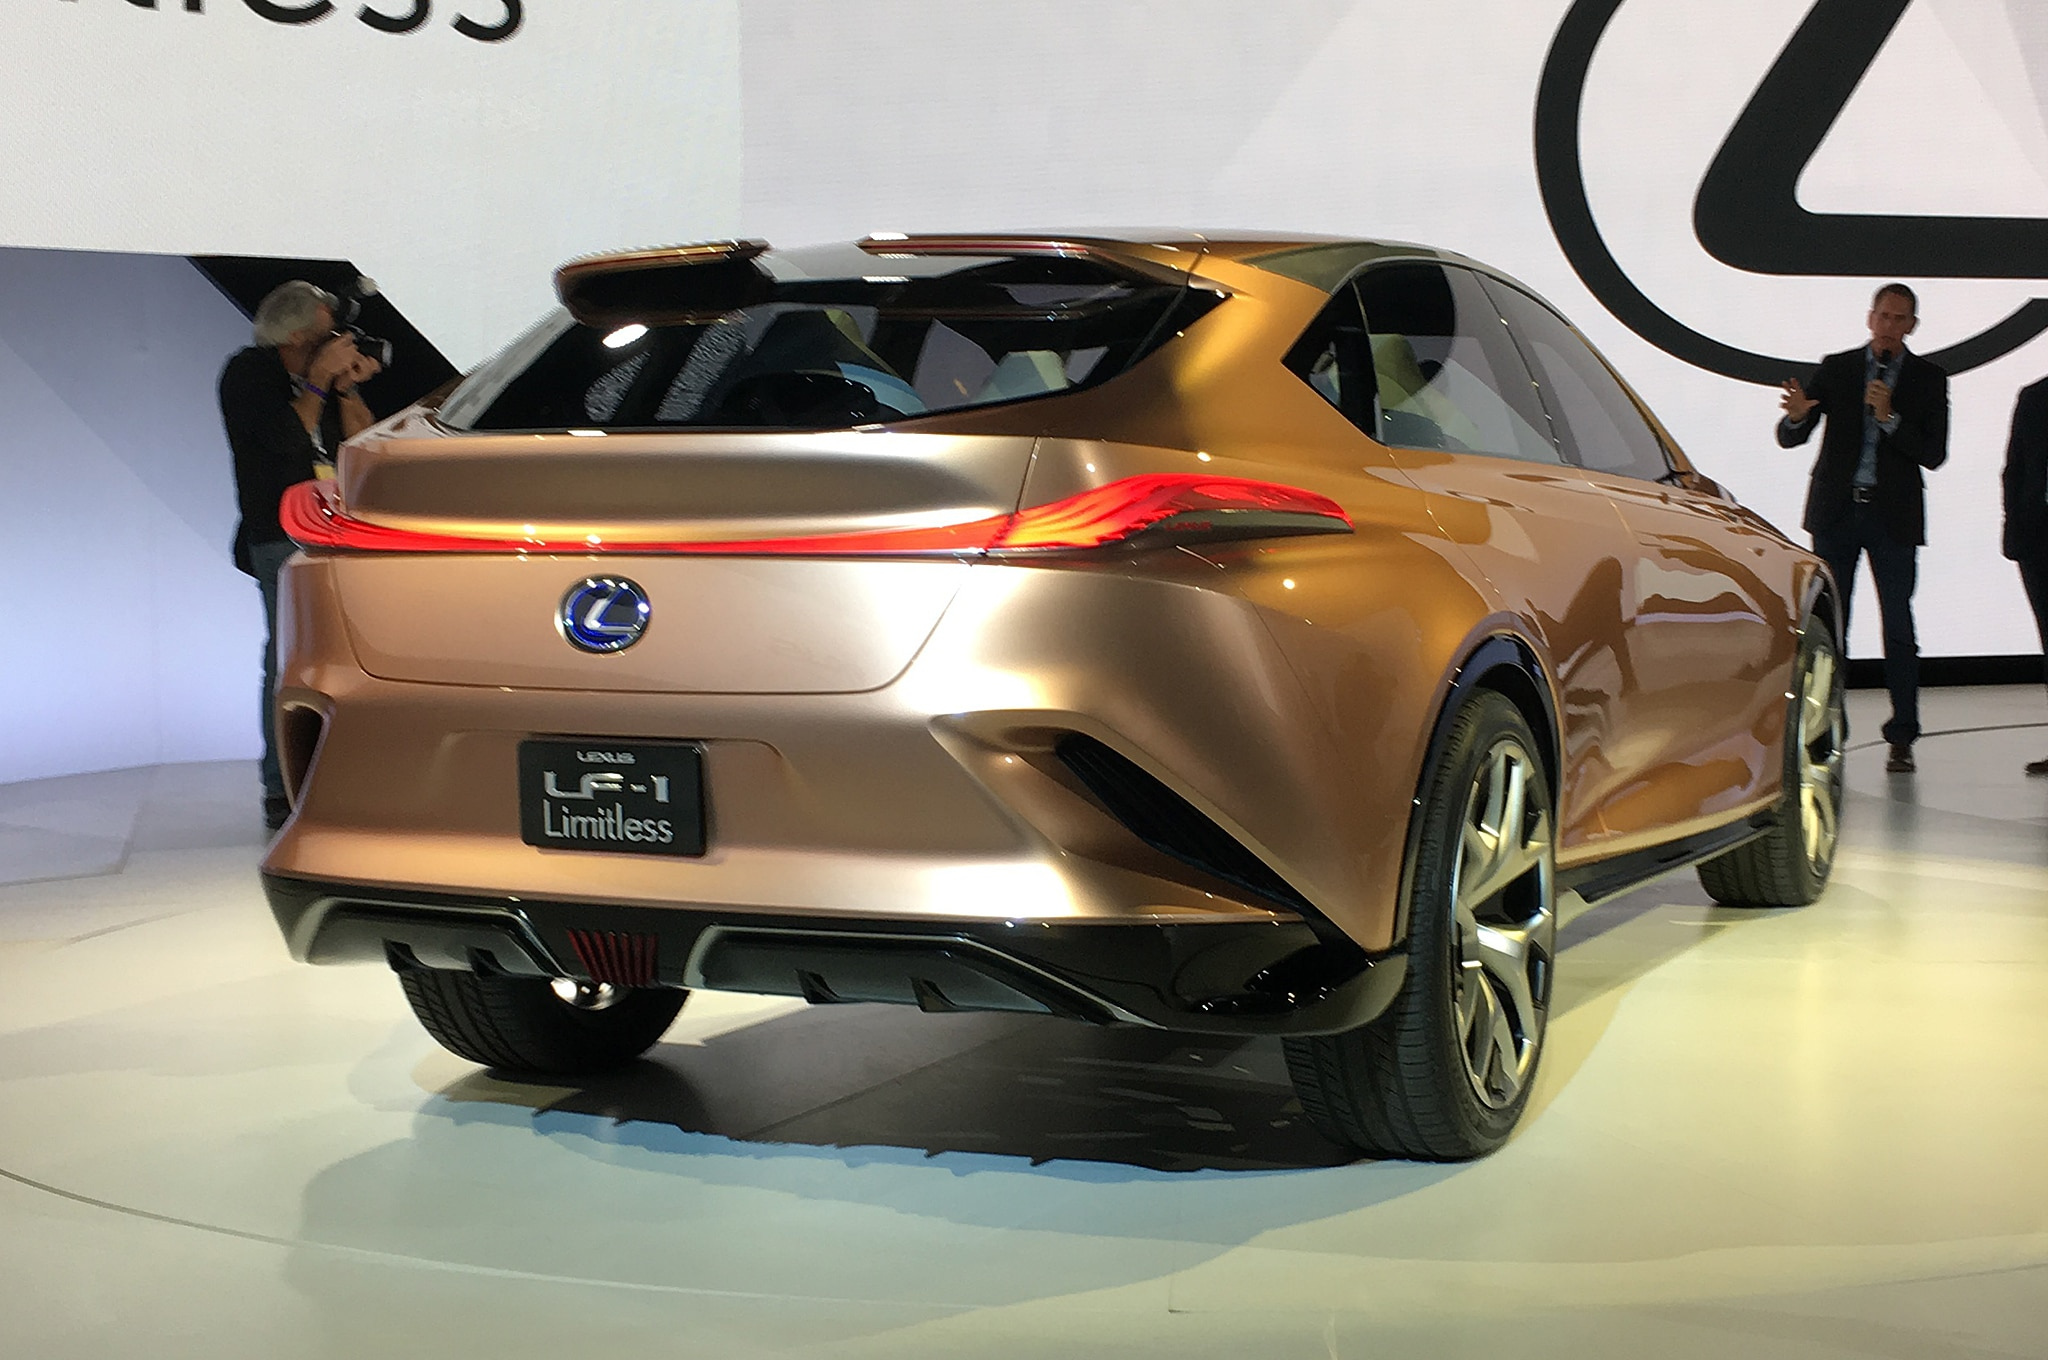 http://st.automobilemag.com/uploads/sites/11/2018/01/Lexus-LF-1-Limitless-concept-rear-three-quarter.jpg